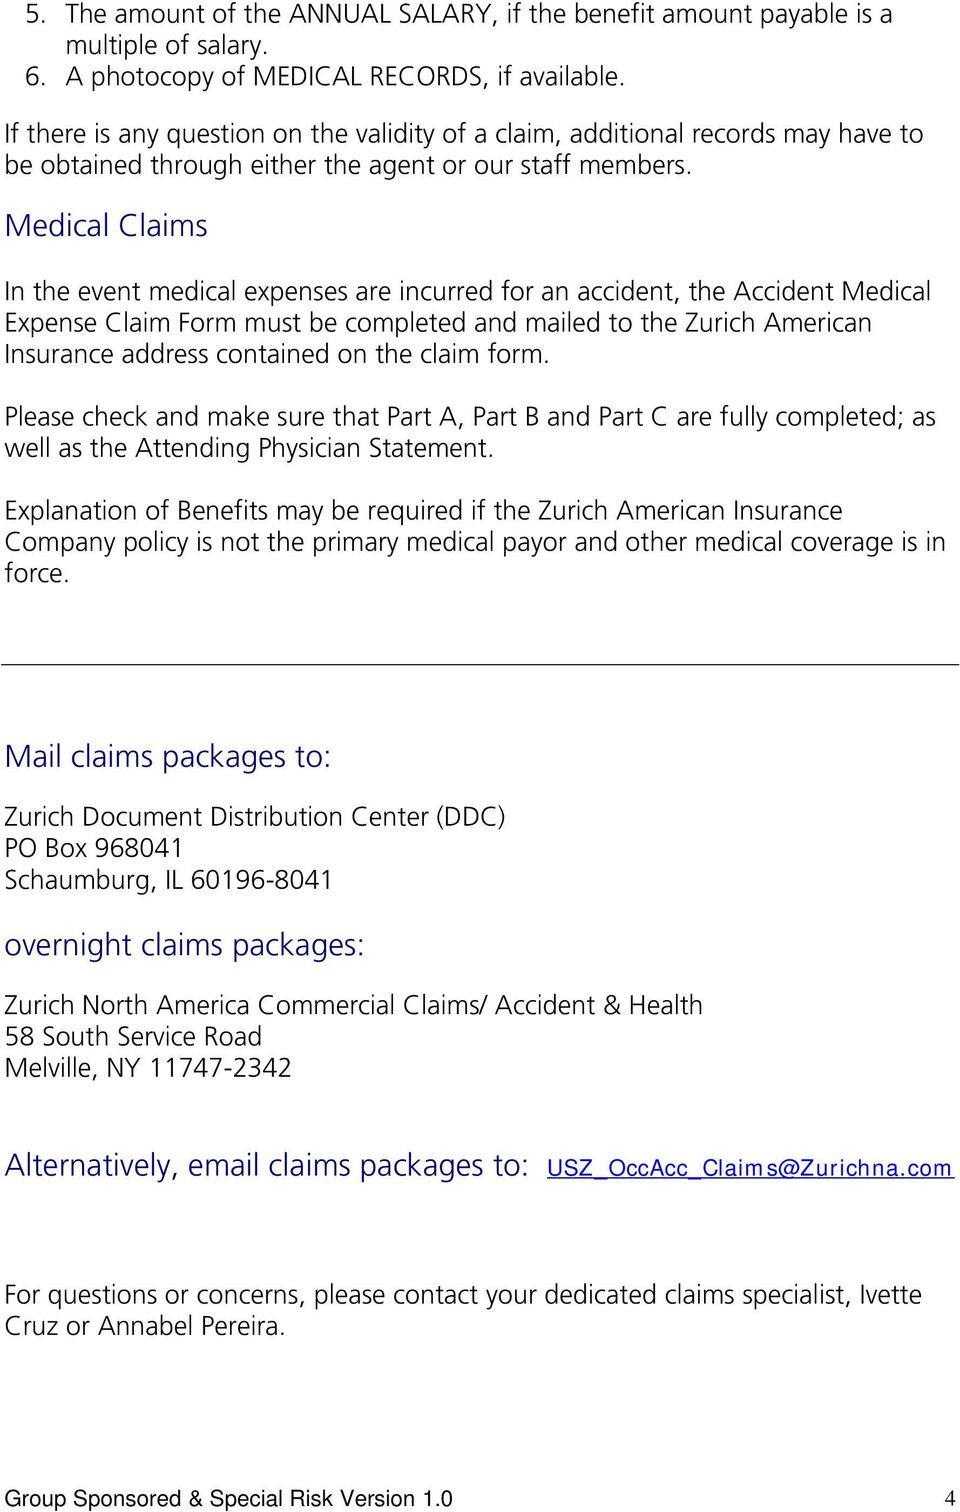 Medical Claims In the event medical expenses are incurred for an accident, the Accident Medical Expense Claim Form must be completed and mailed to the Zurich American Insurance address contained on